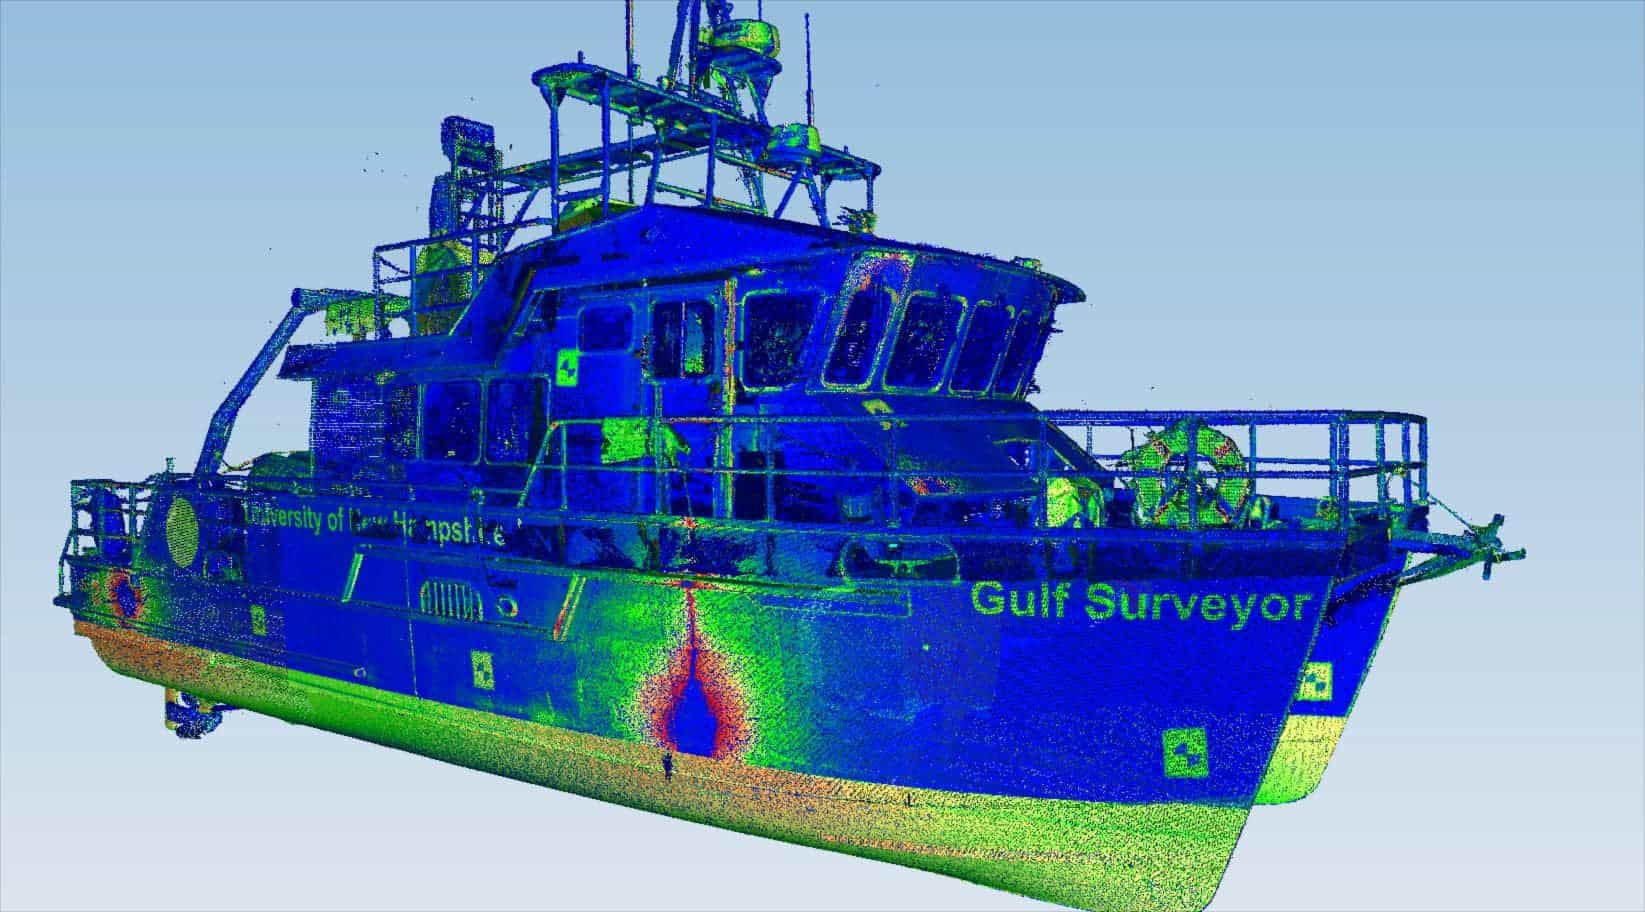 Gulf Surveyor